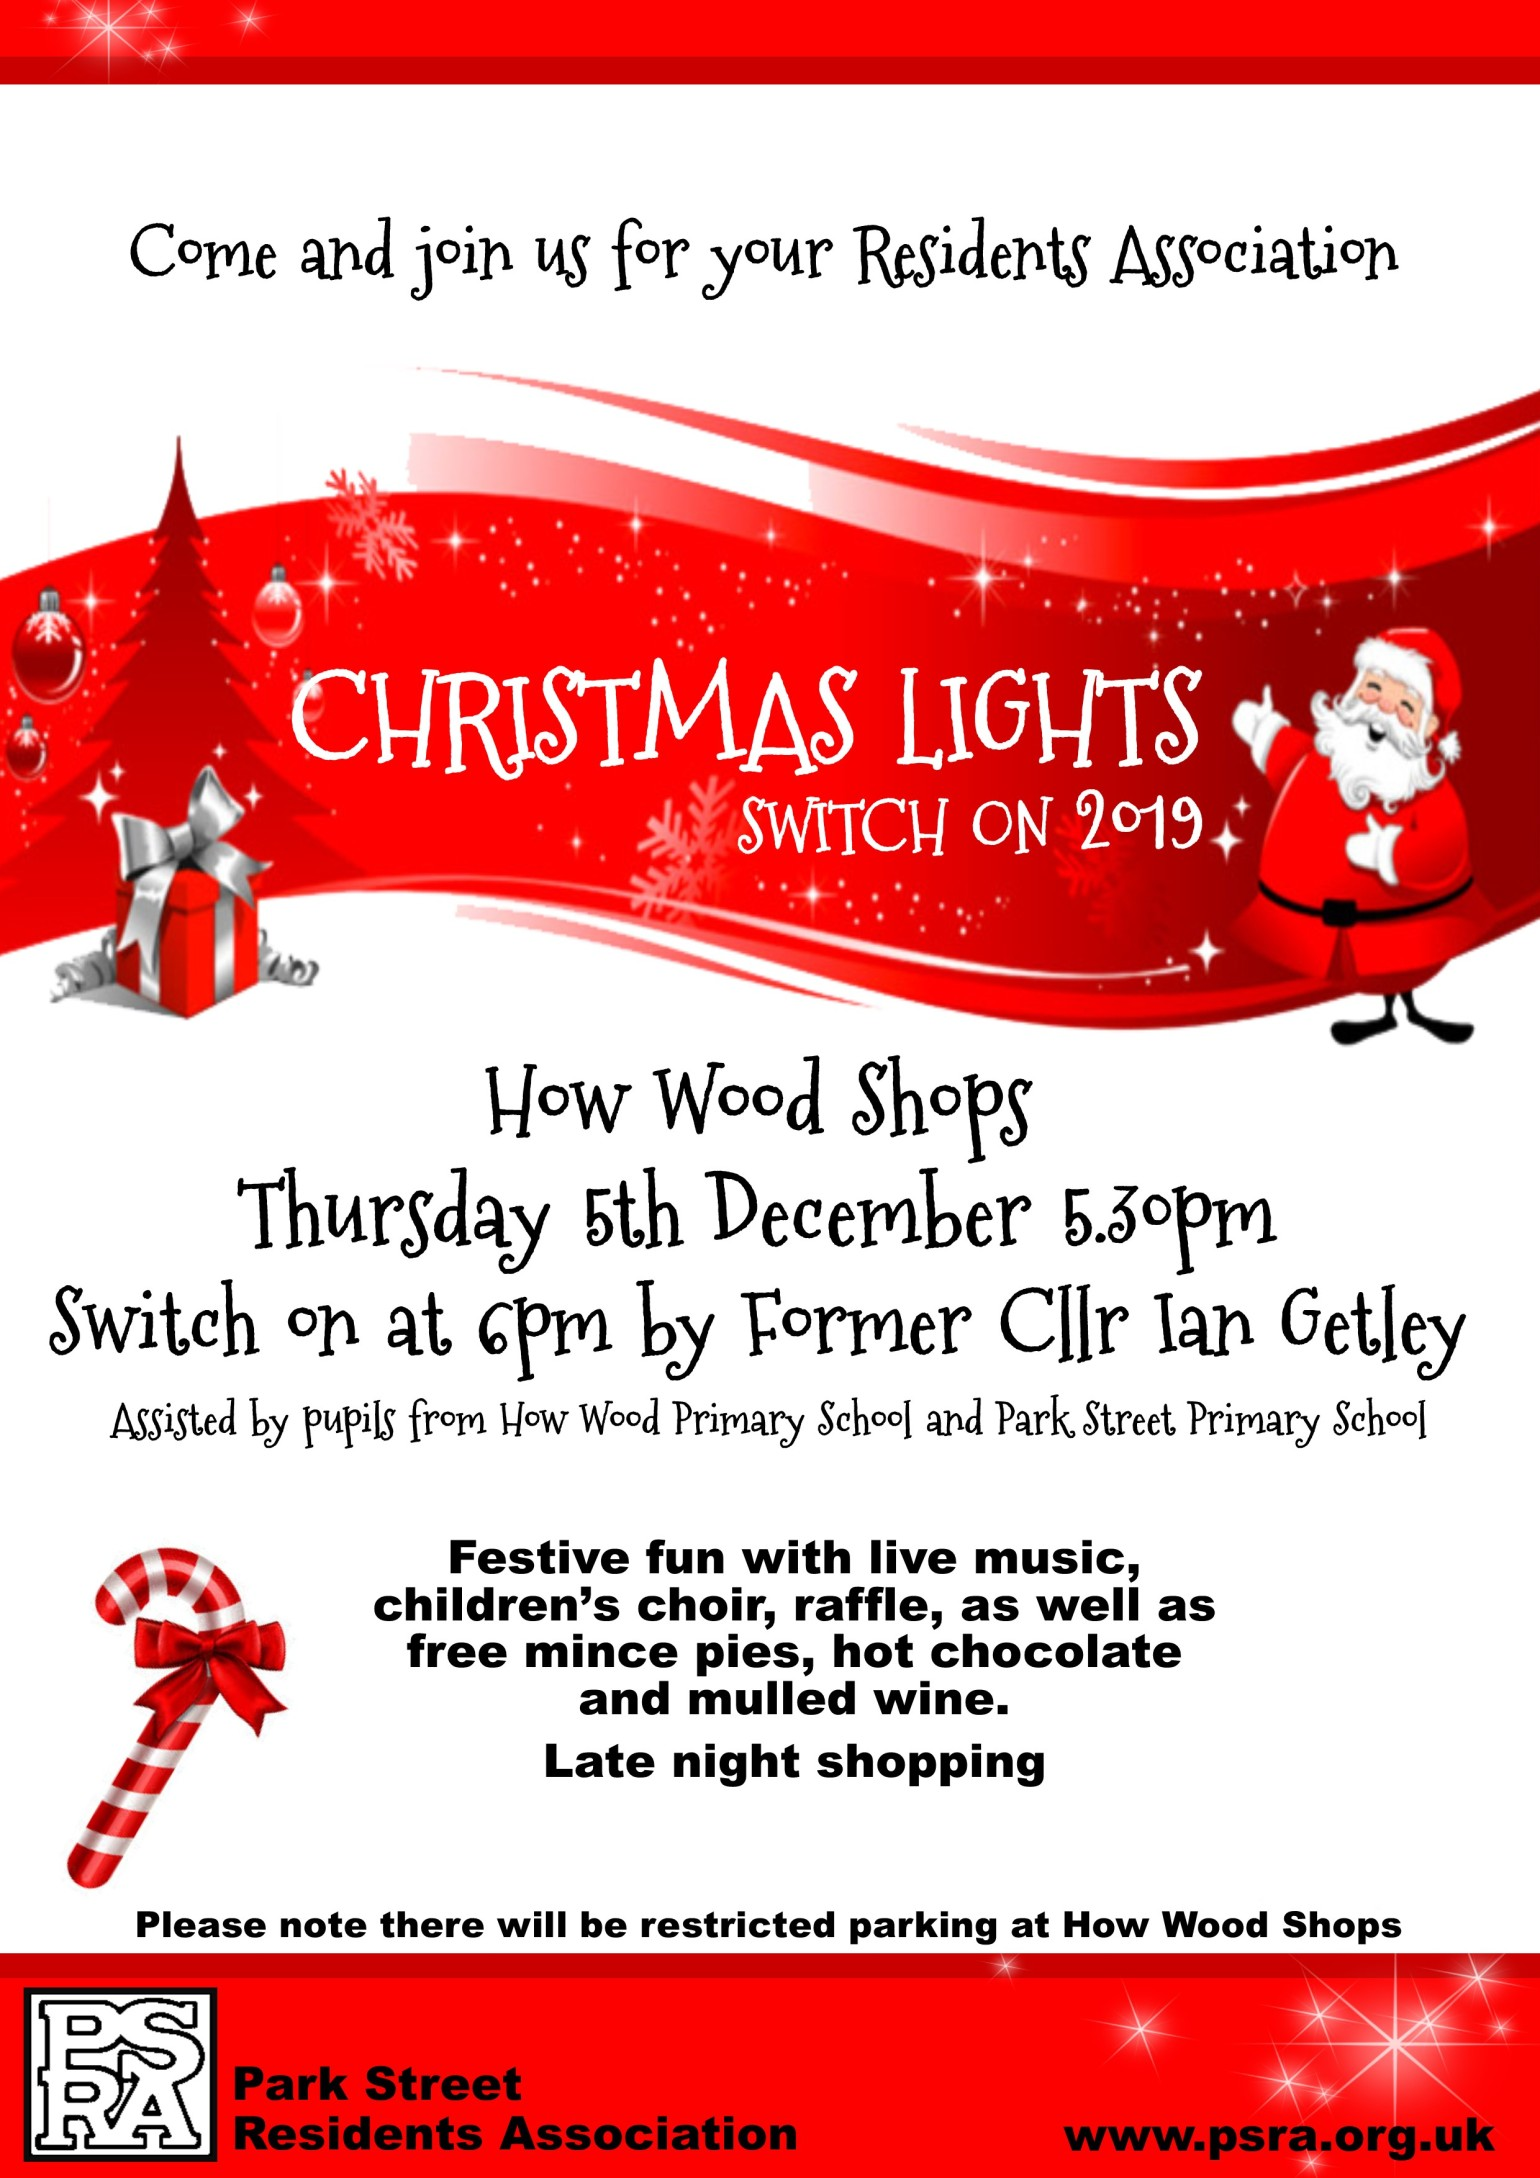 PSRA Christmas Lights Switch on 2019